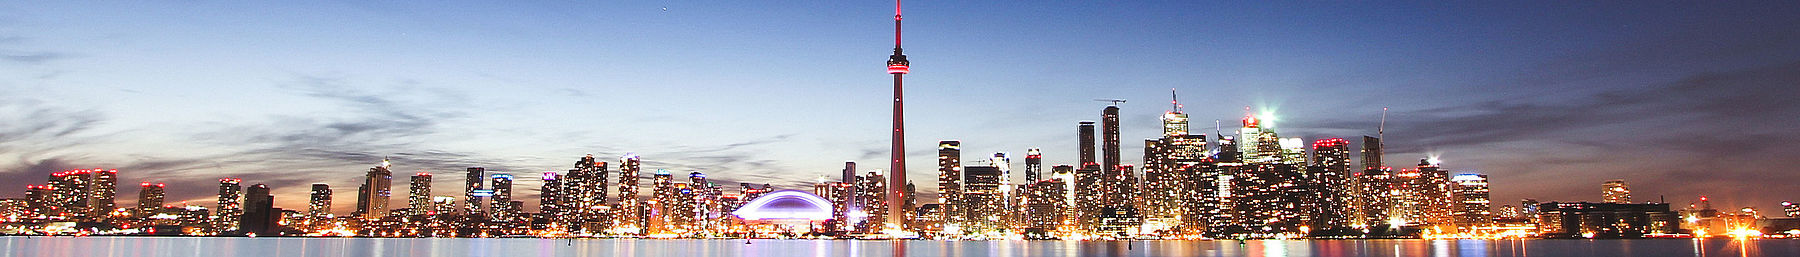 Greater Toronto Area Wikivoyage banner.jpg